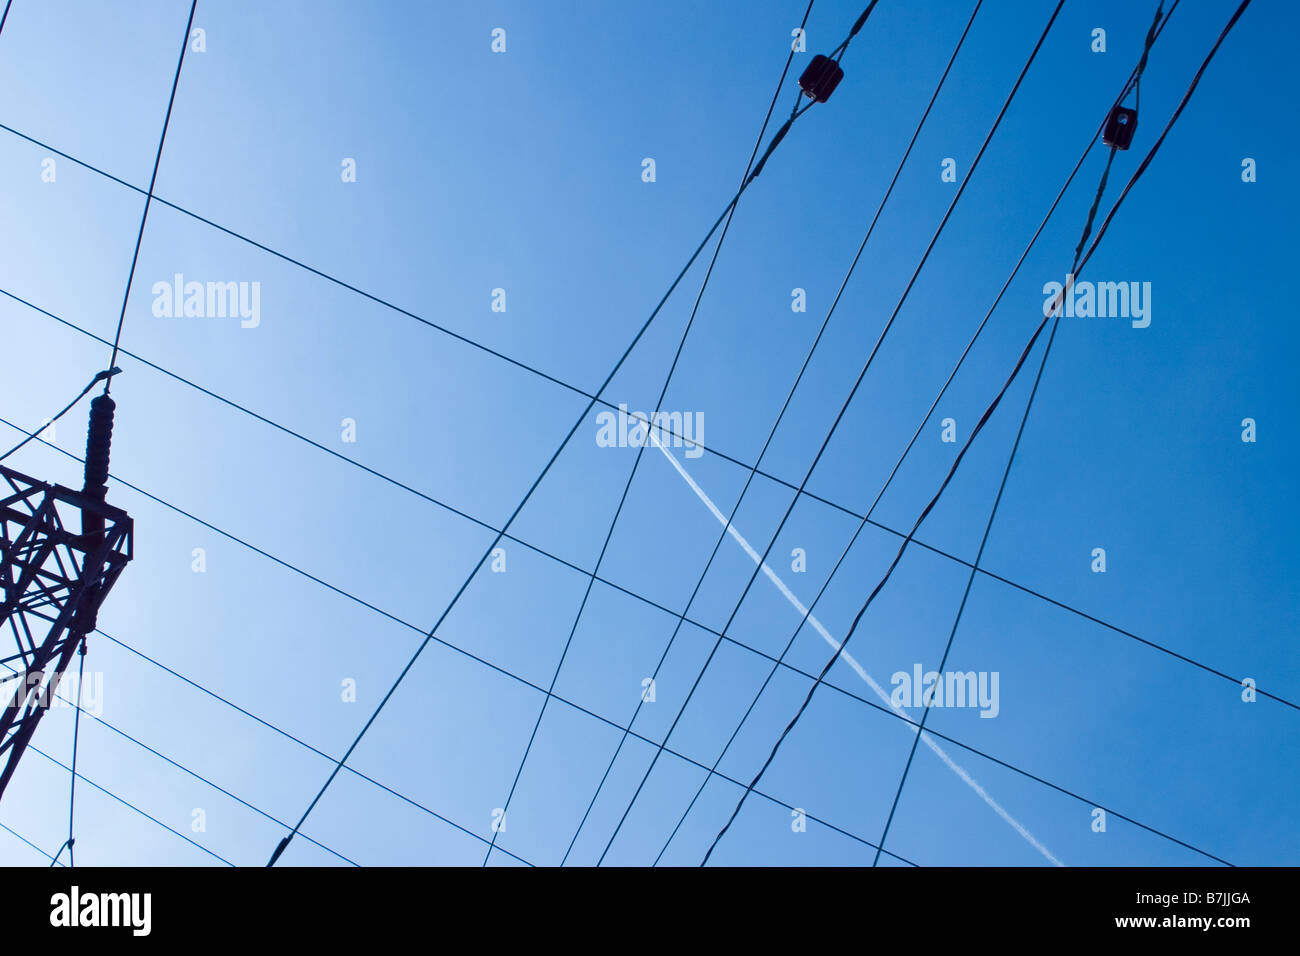 Jet contrail in midst of electric lines; Canada, Ontario - Stock Image